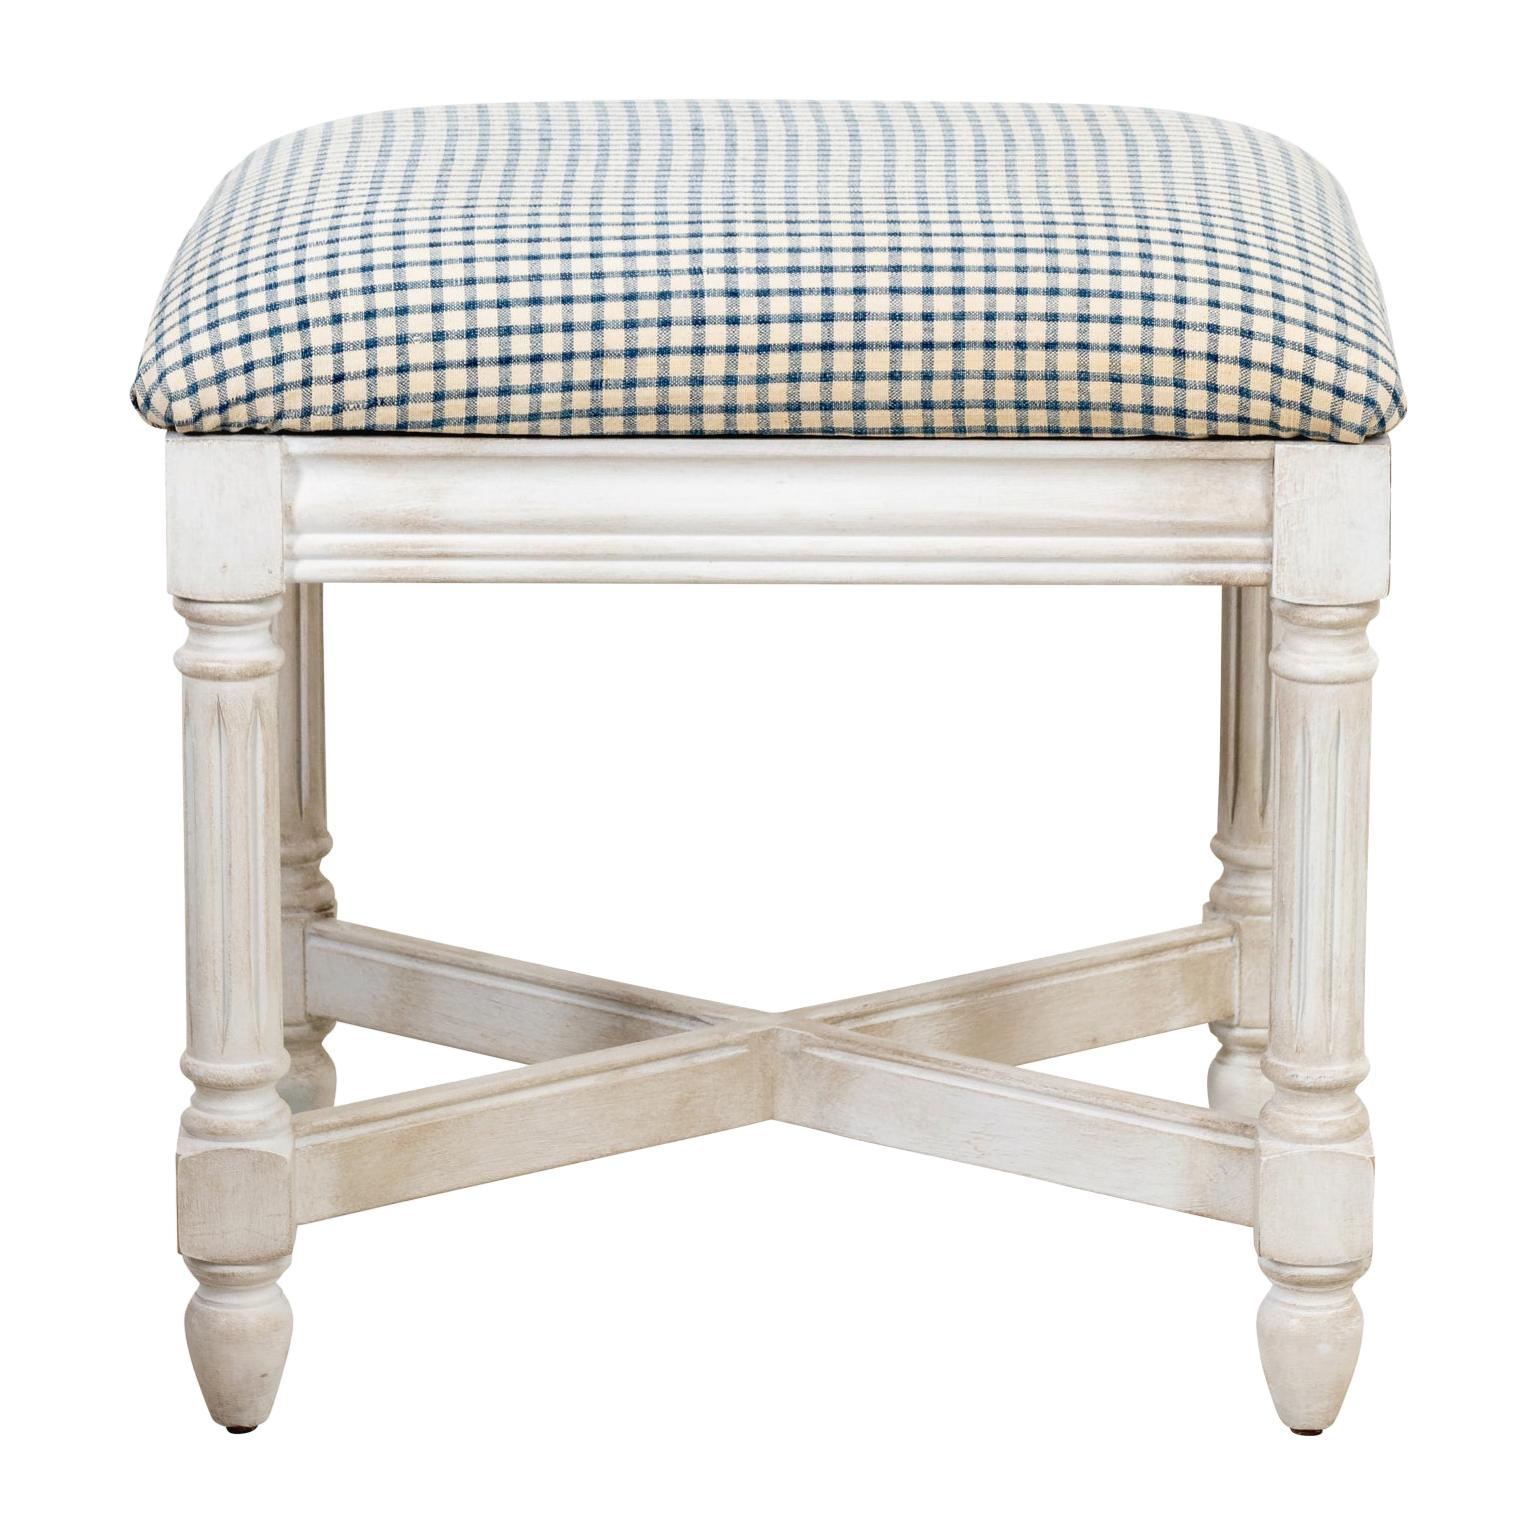 White Painted Neoclassical Style Bench